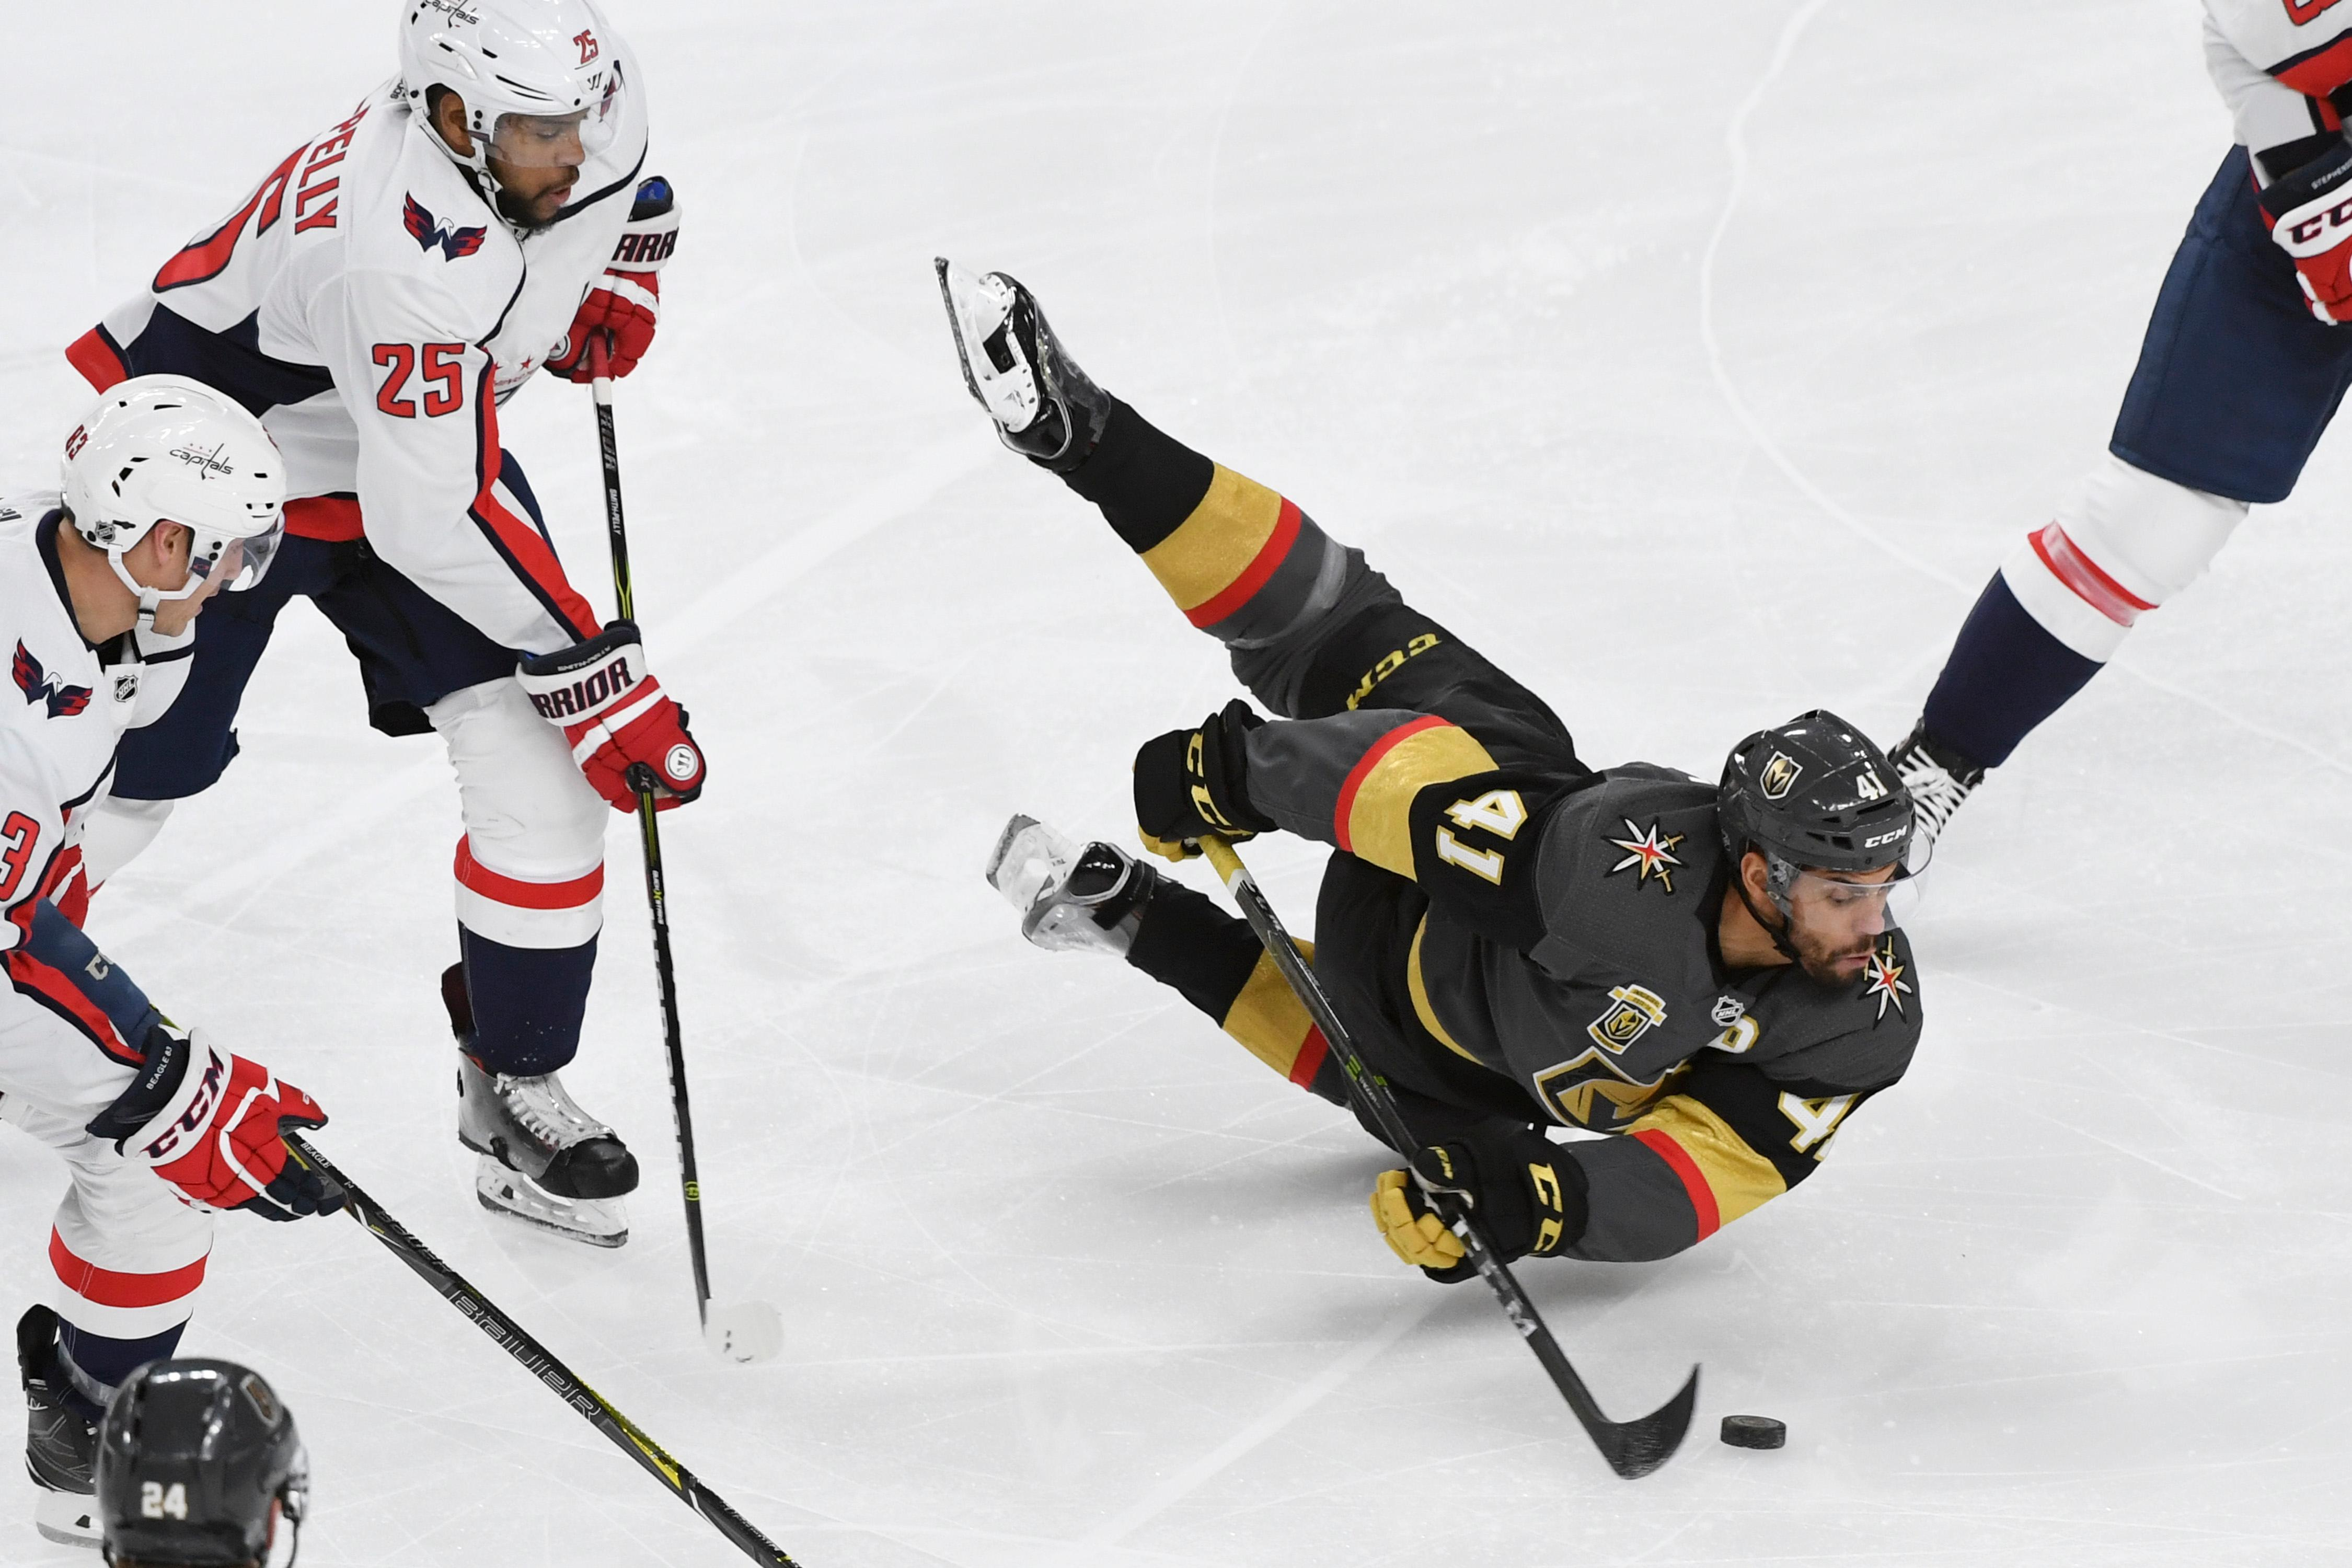 Vegas Golden Knights left wing Pierre-Edouard Bellemare (41) falls to the ice while trying to control the puck as Washington Capitals right wing Devante Smith-Pelly (25) comes up from behind during their NHL hockey game Saturday, December 23, 2017, at T-Mobile Arena in Las Vegas.  CREDIT: Sam Morris/Las Vegas News Bureau